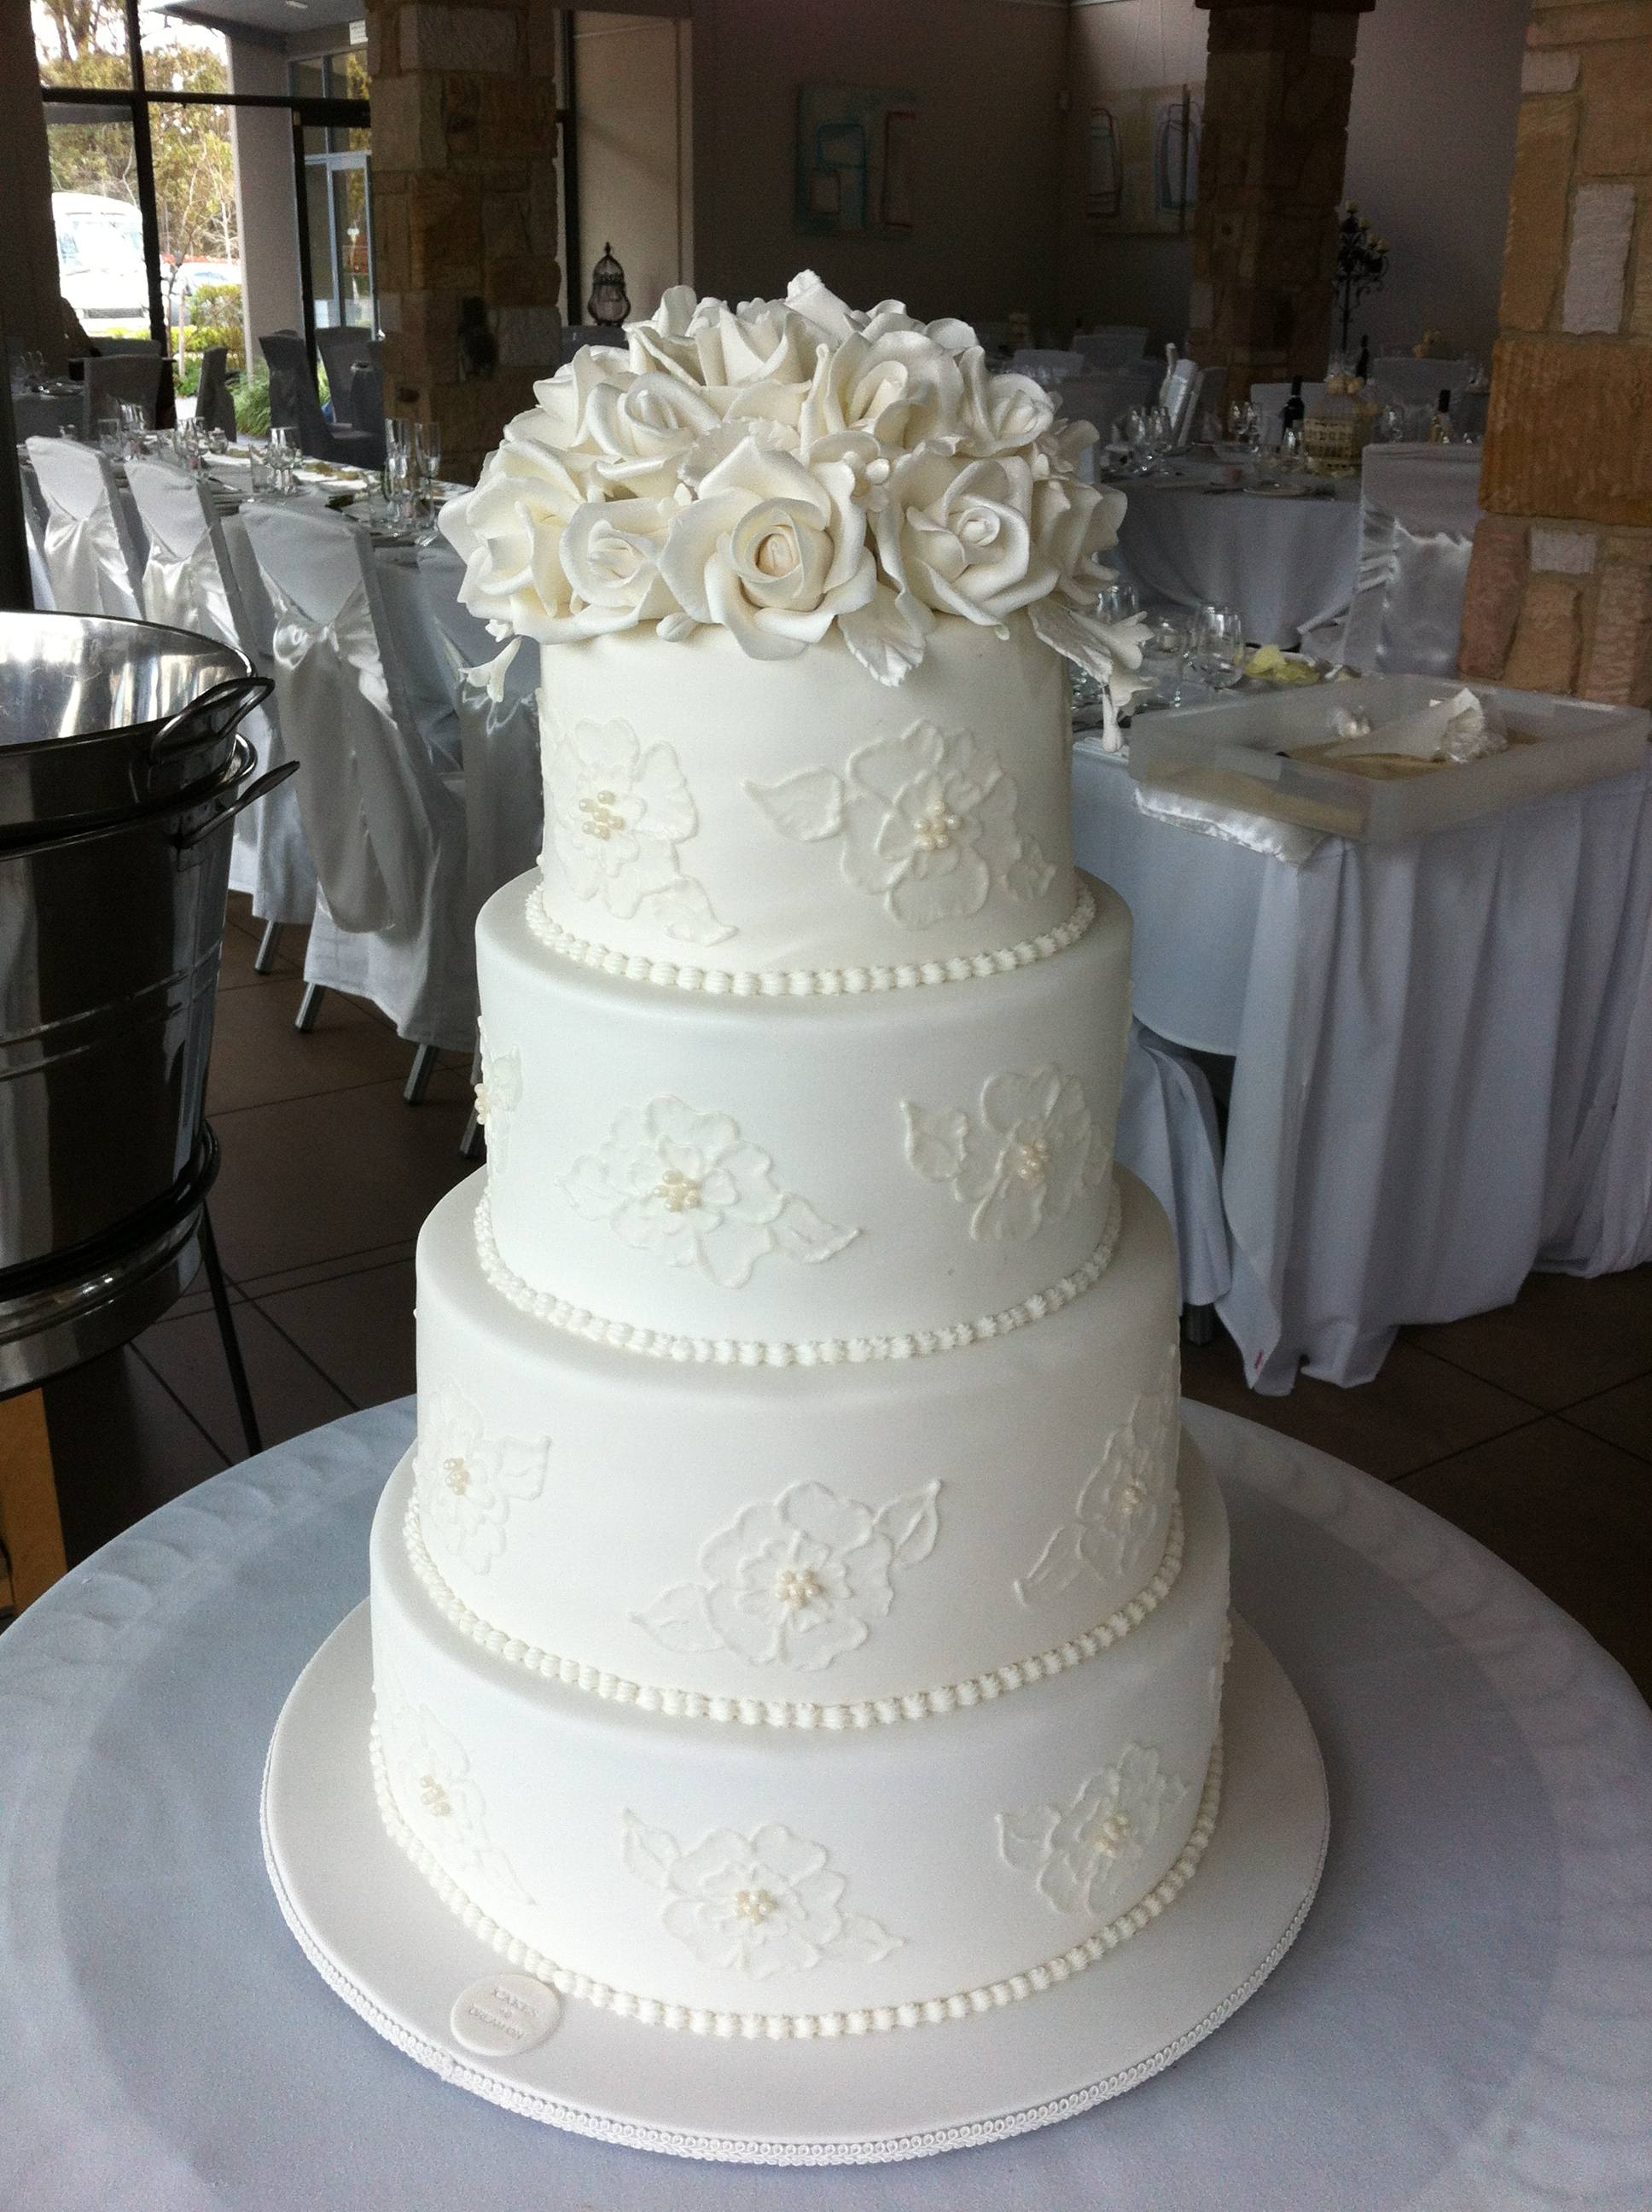 7 4 Tier Wedding Cakes With Lace Photo - 4 Tier Wedding Cake, 4 Tier ...